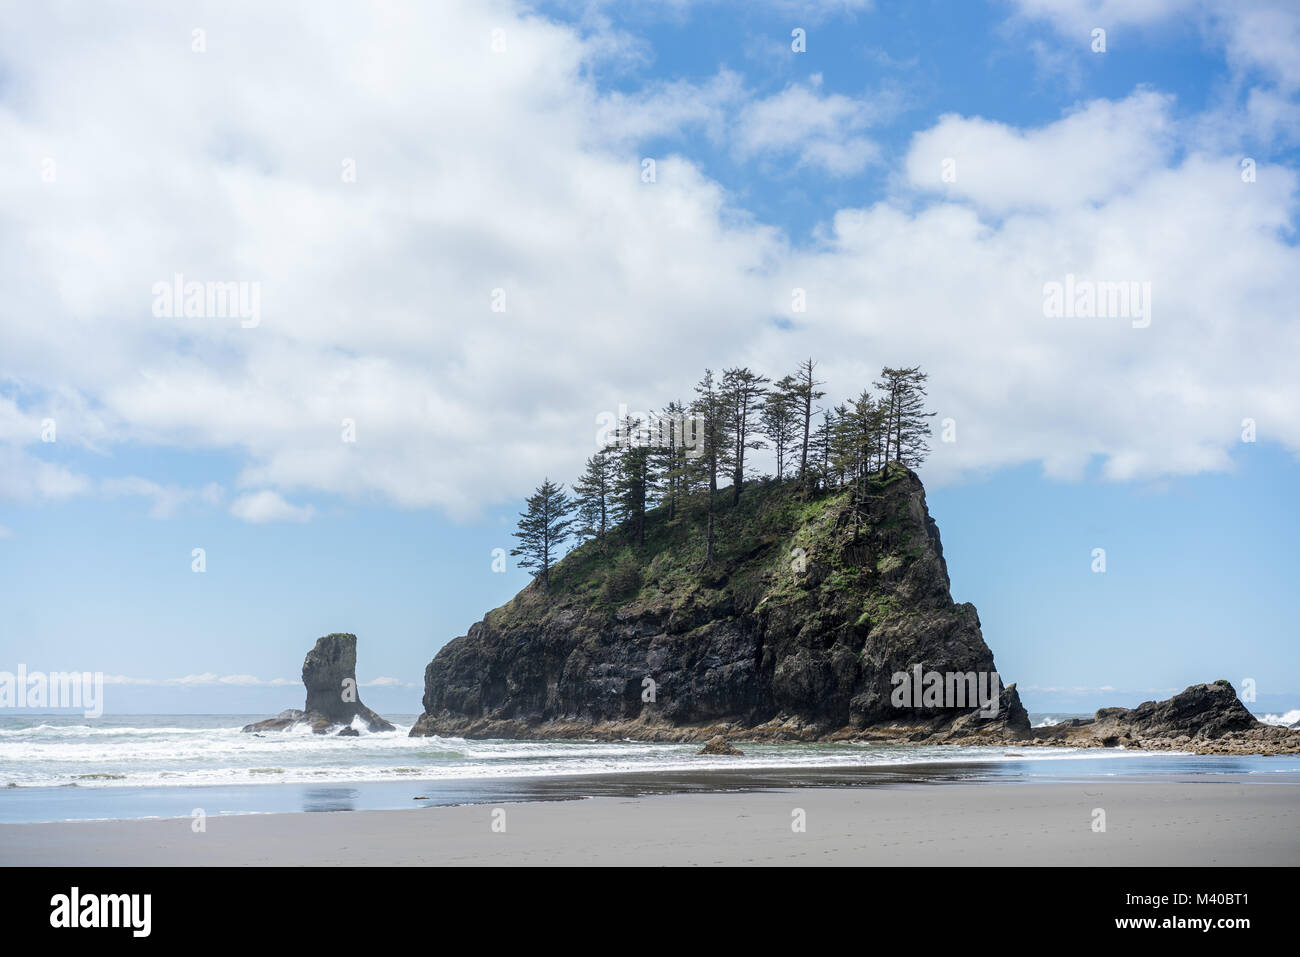 A rocky outcropping on the Oregon Coast at Cannon Beach - Stock Image